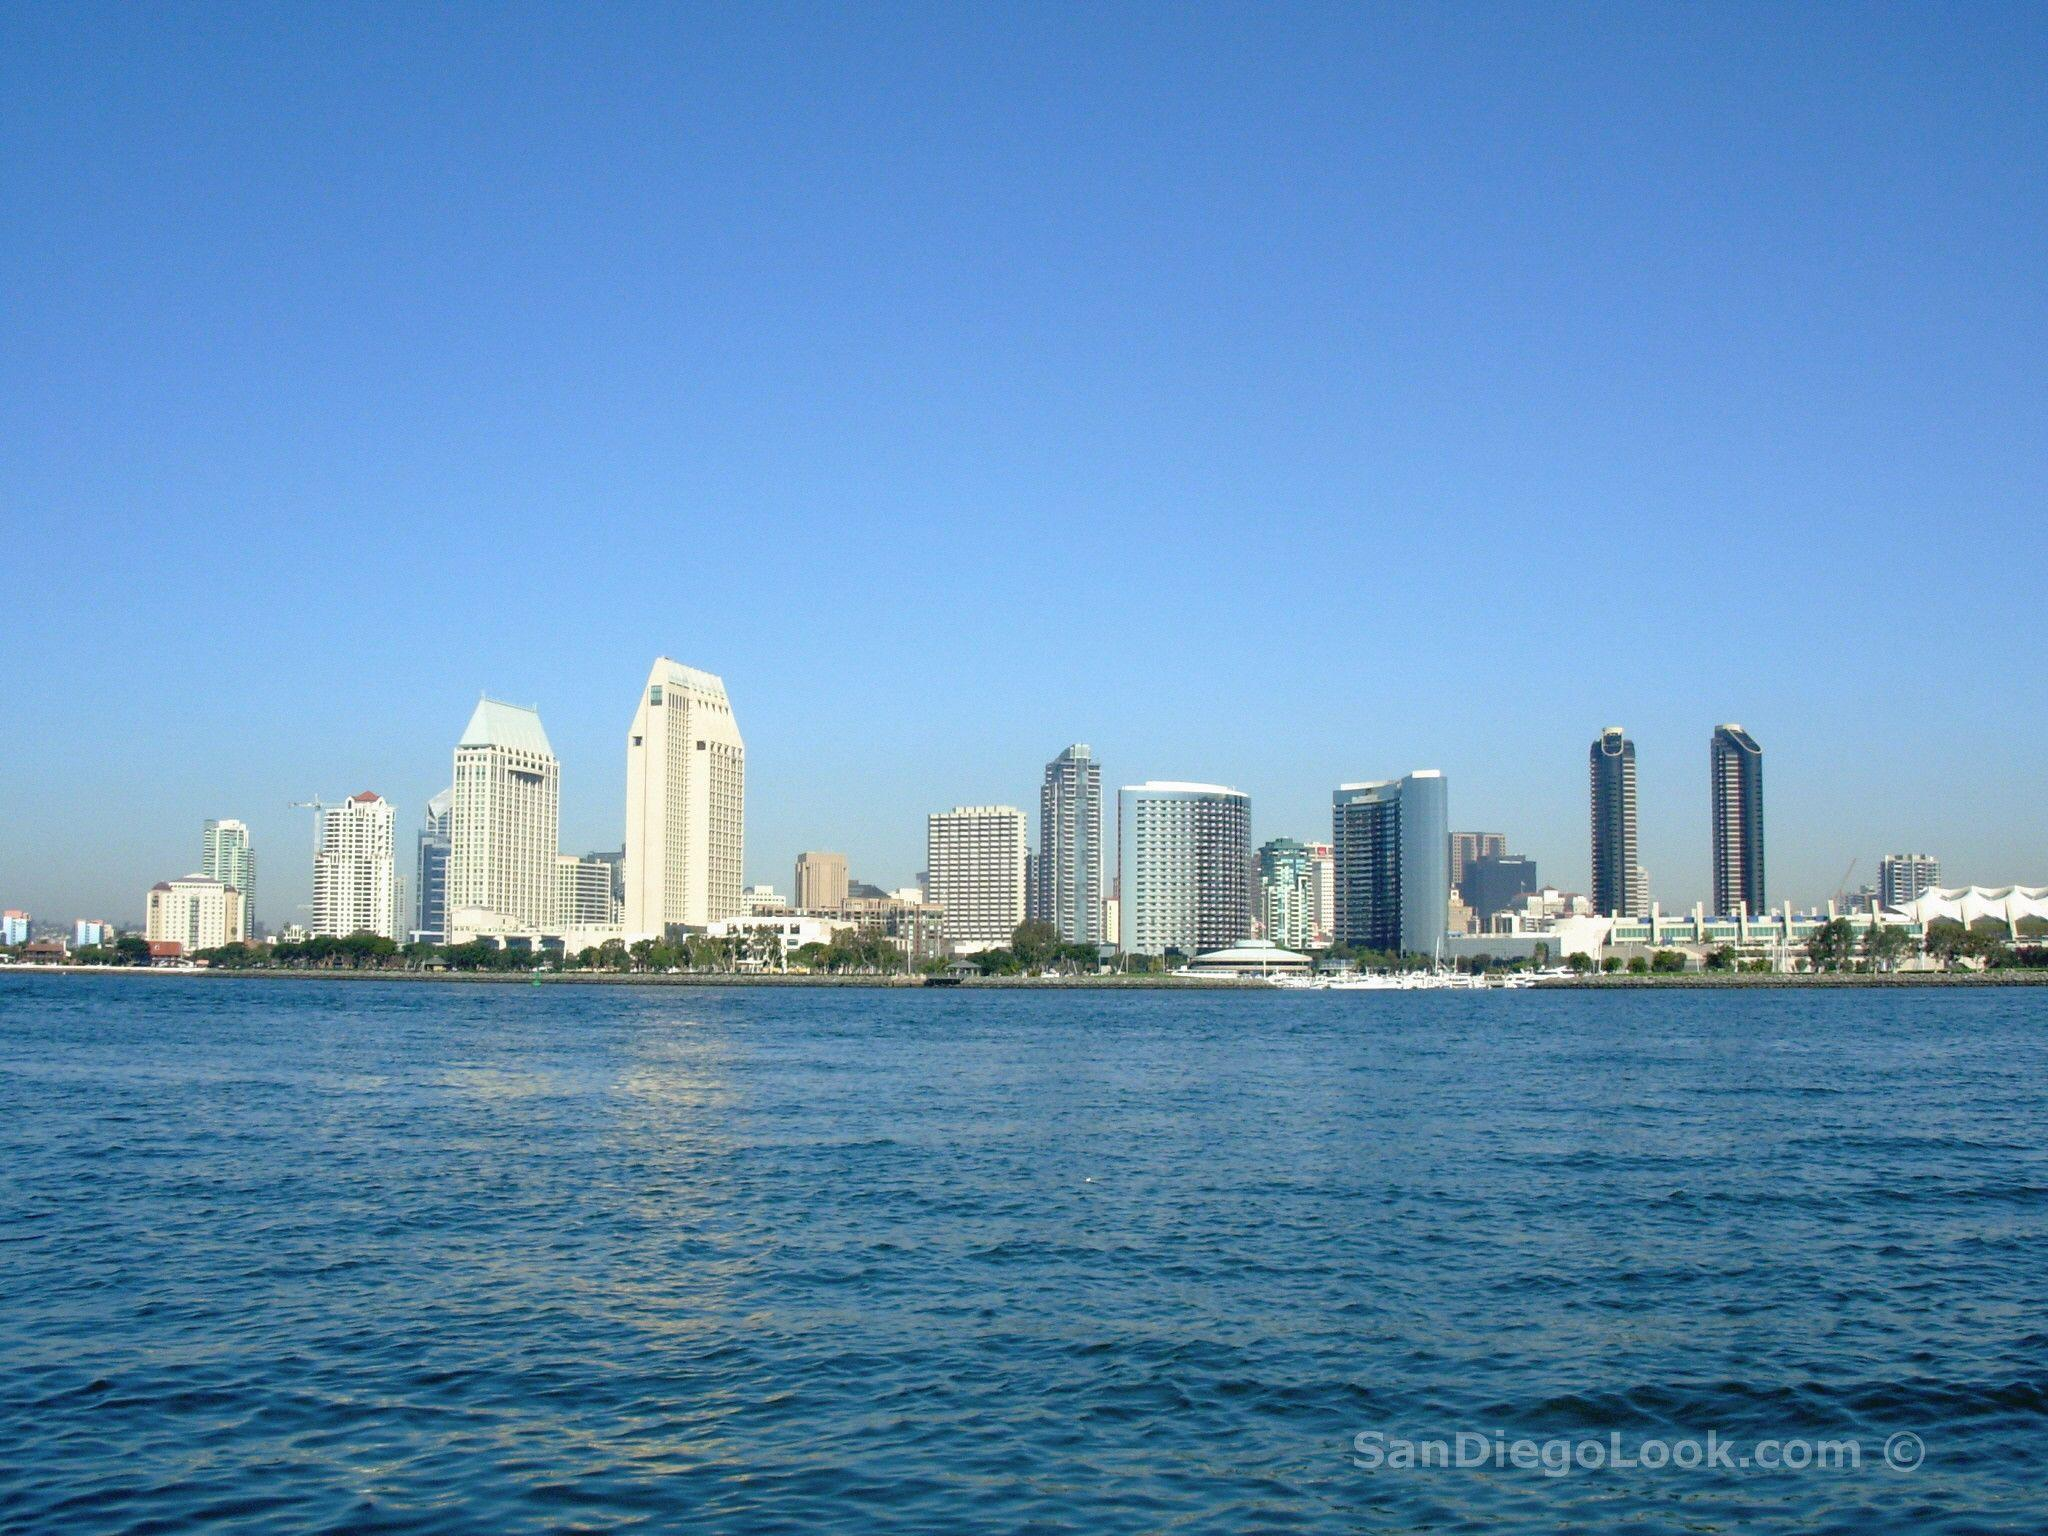 San Diego Screensavers - sandiegolook.com - Images and pics you ...